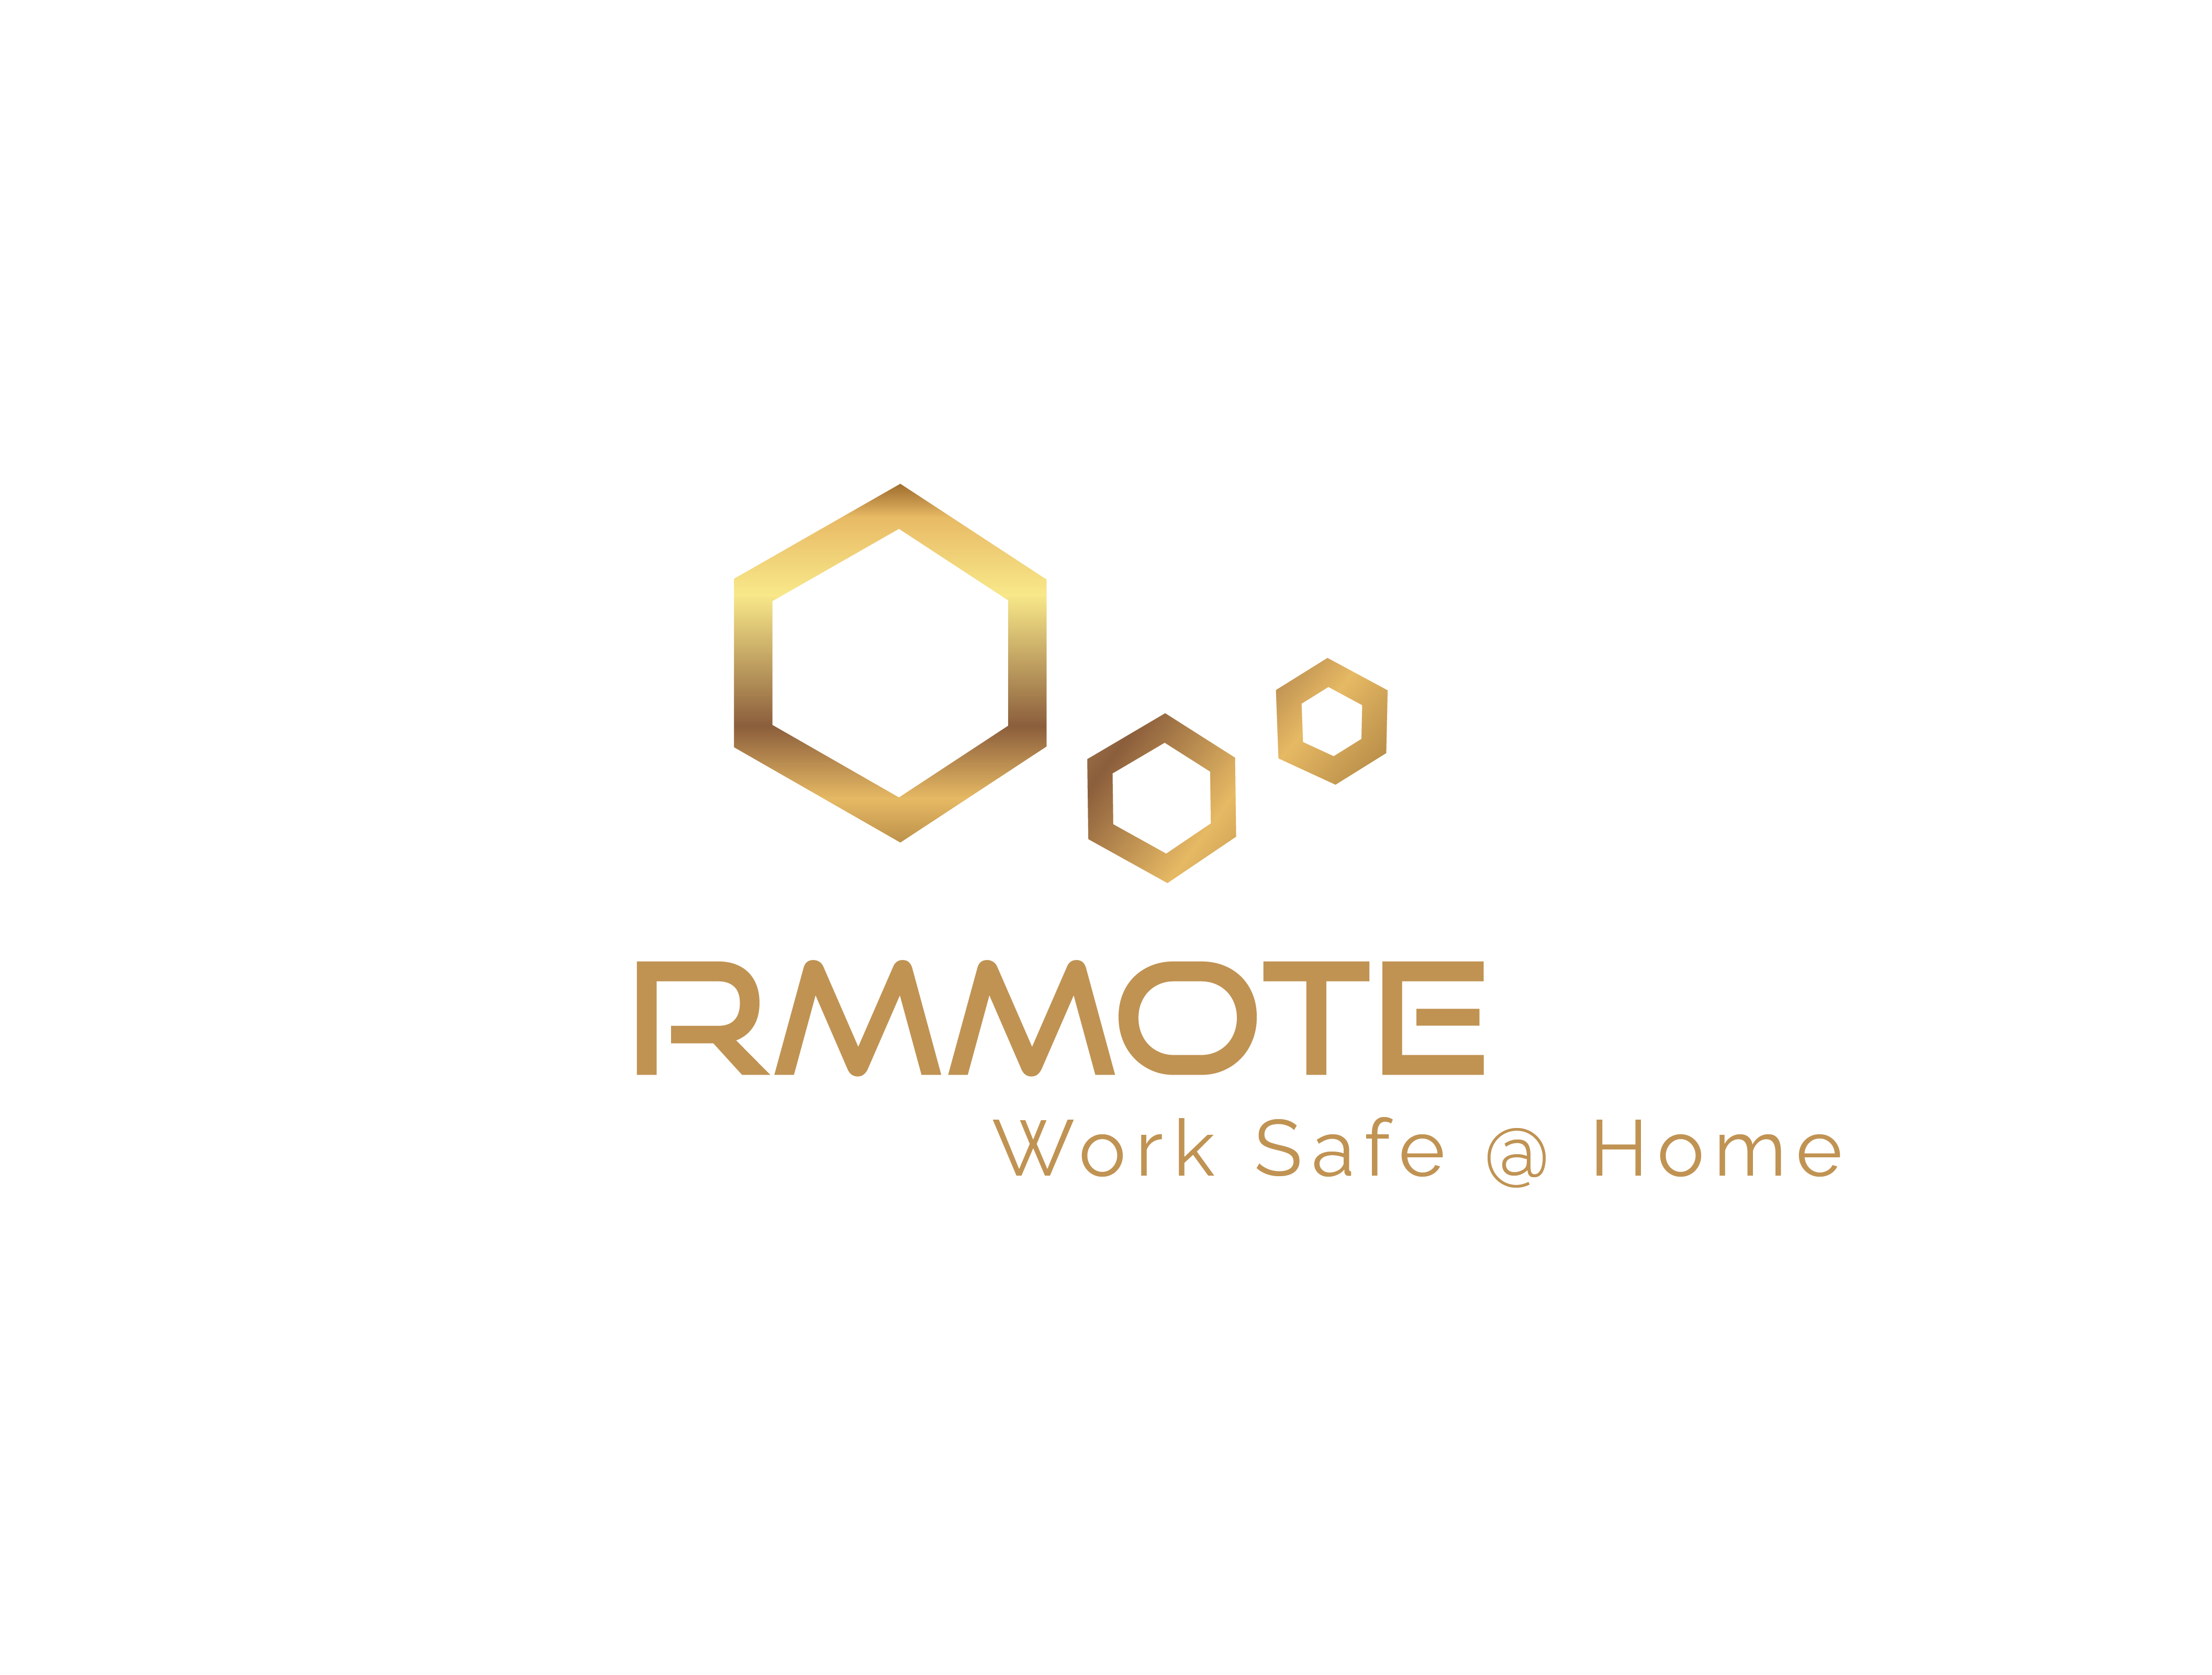 Employers Planning to Return Workers to the Office, But Who? Rmmote, Inc. Launched in November of 2020 to Address the Hazards Faced by Working from Home.